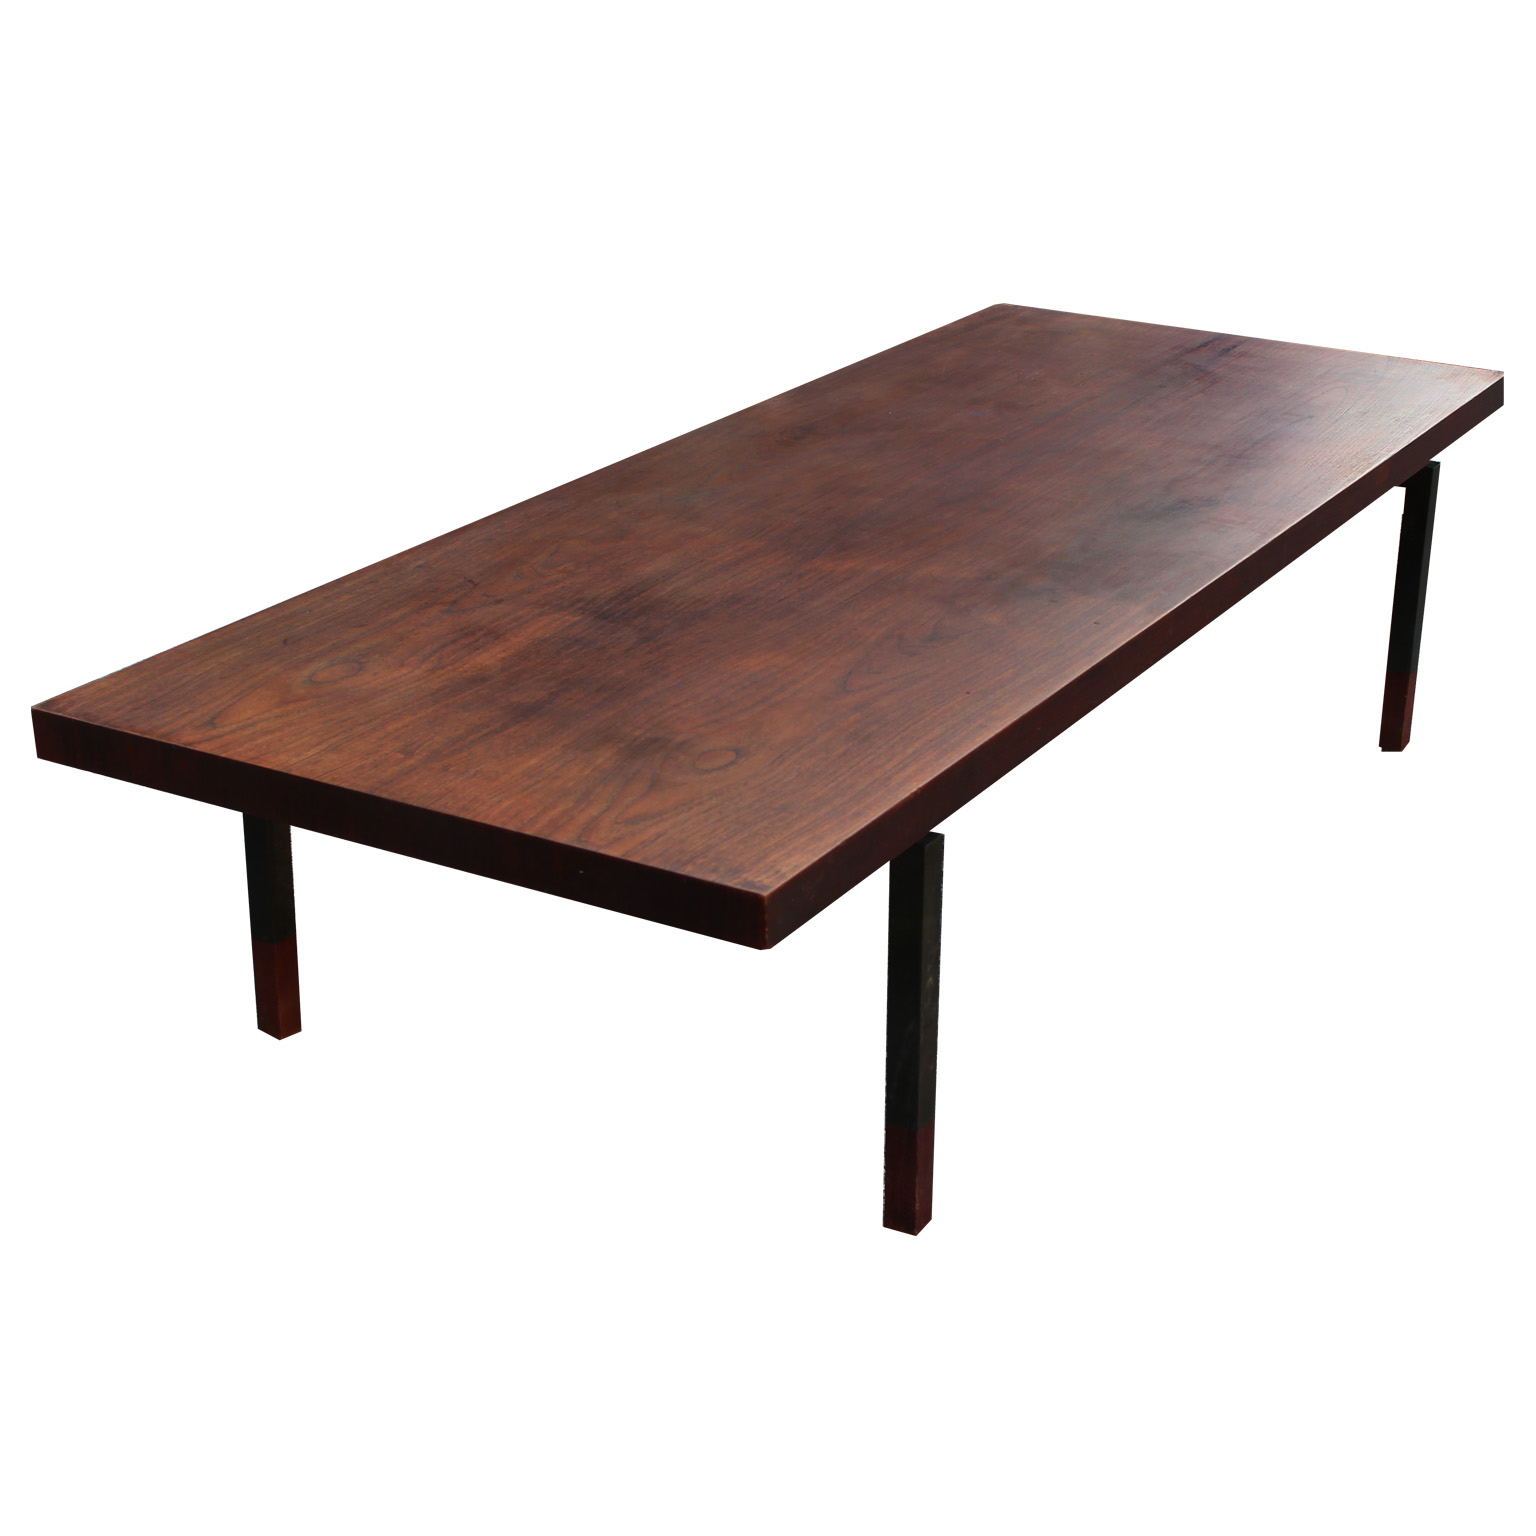 Johannes aasbjerg danish teak coffee table for Coffee table